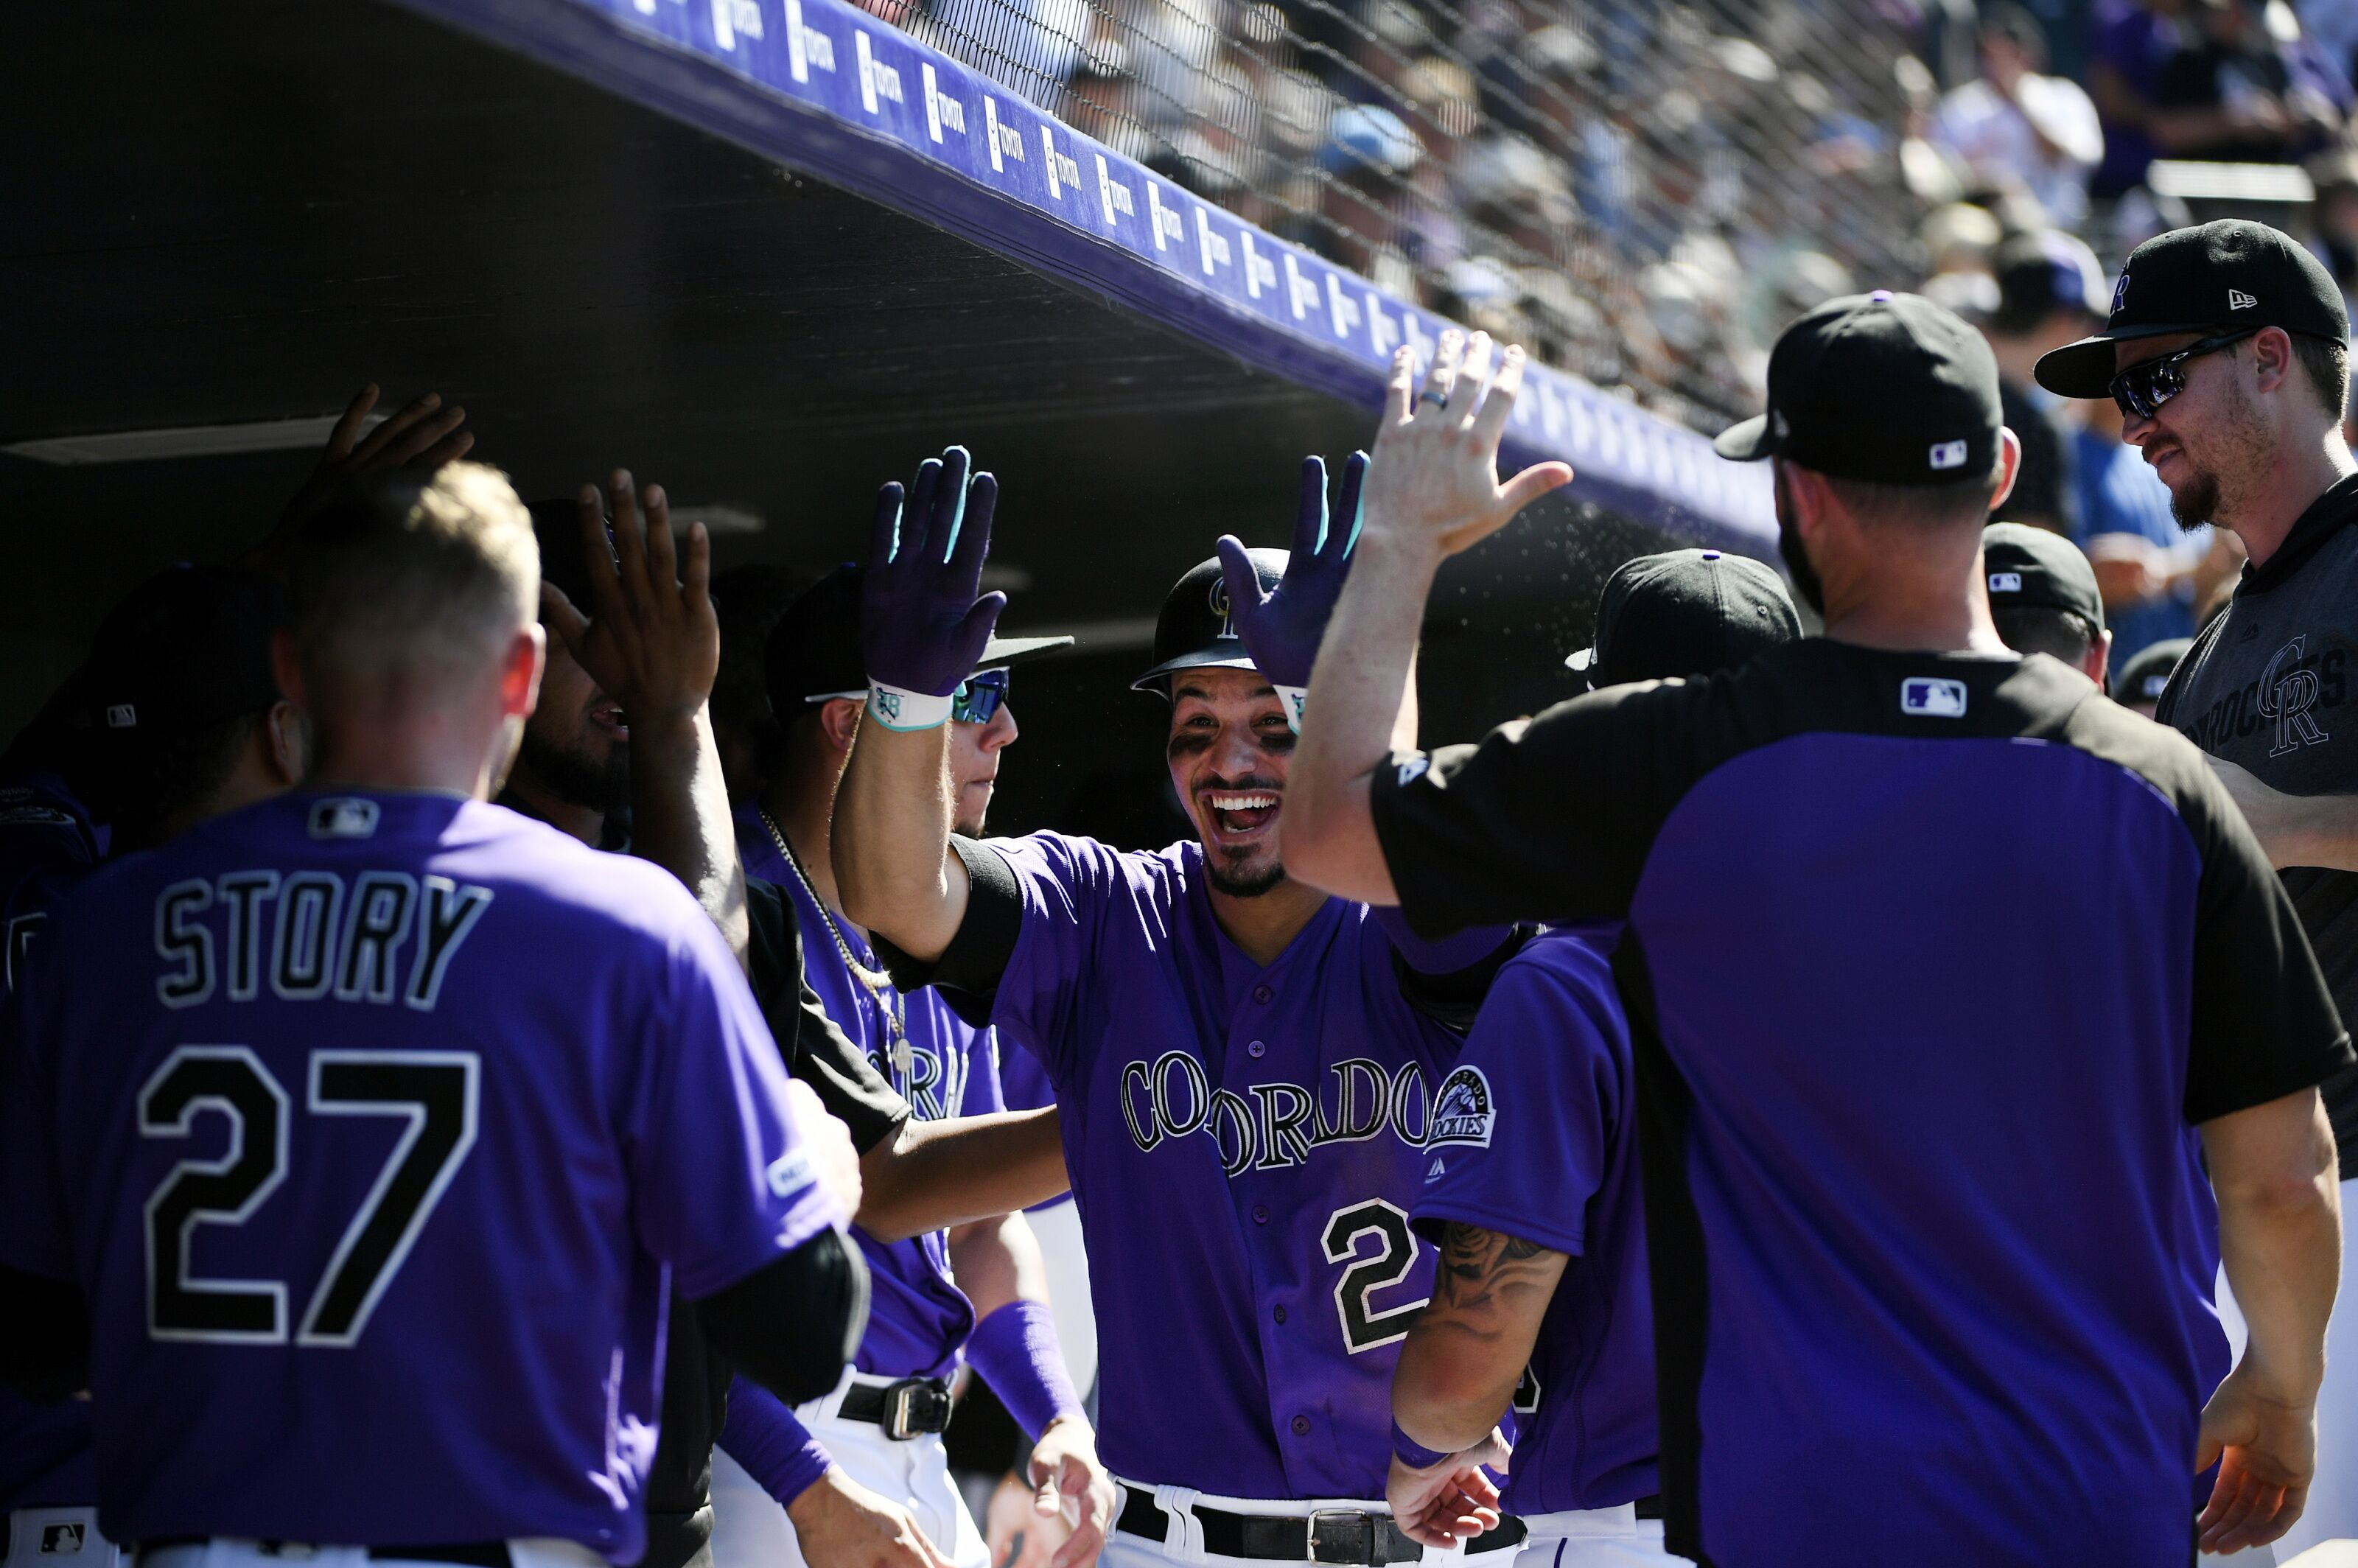 Colorado Rockies: Cost cutting moves to come?